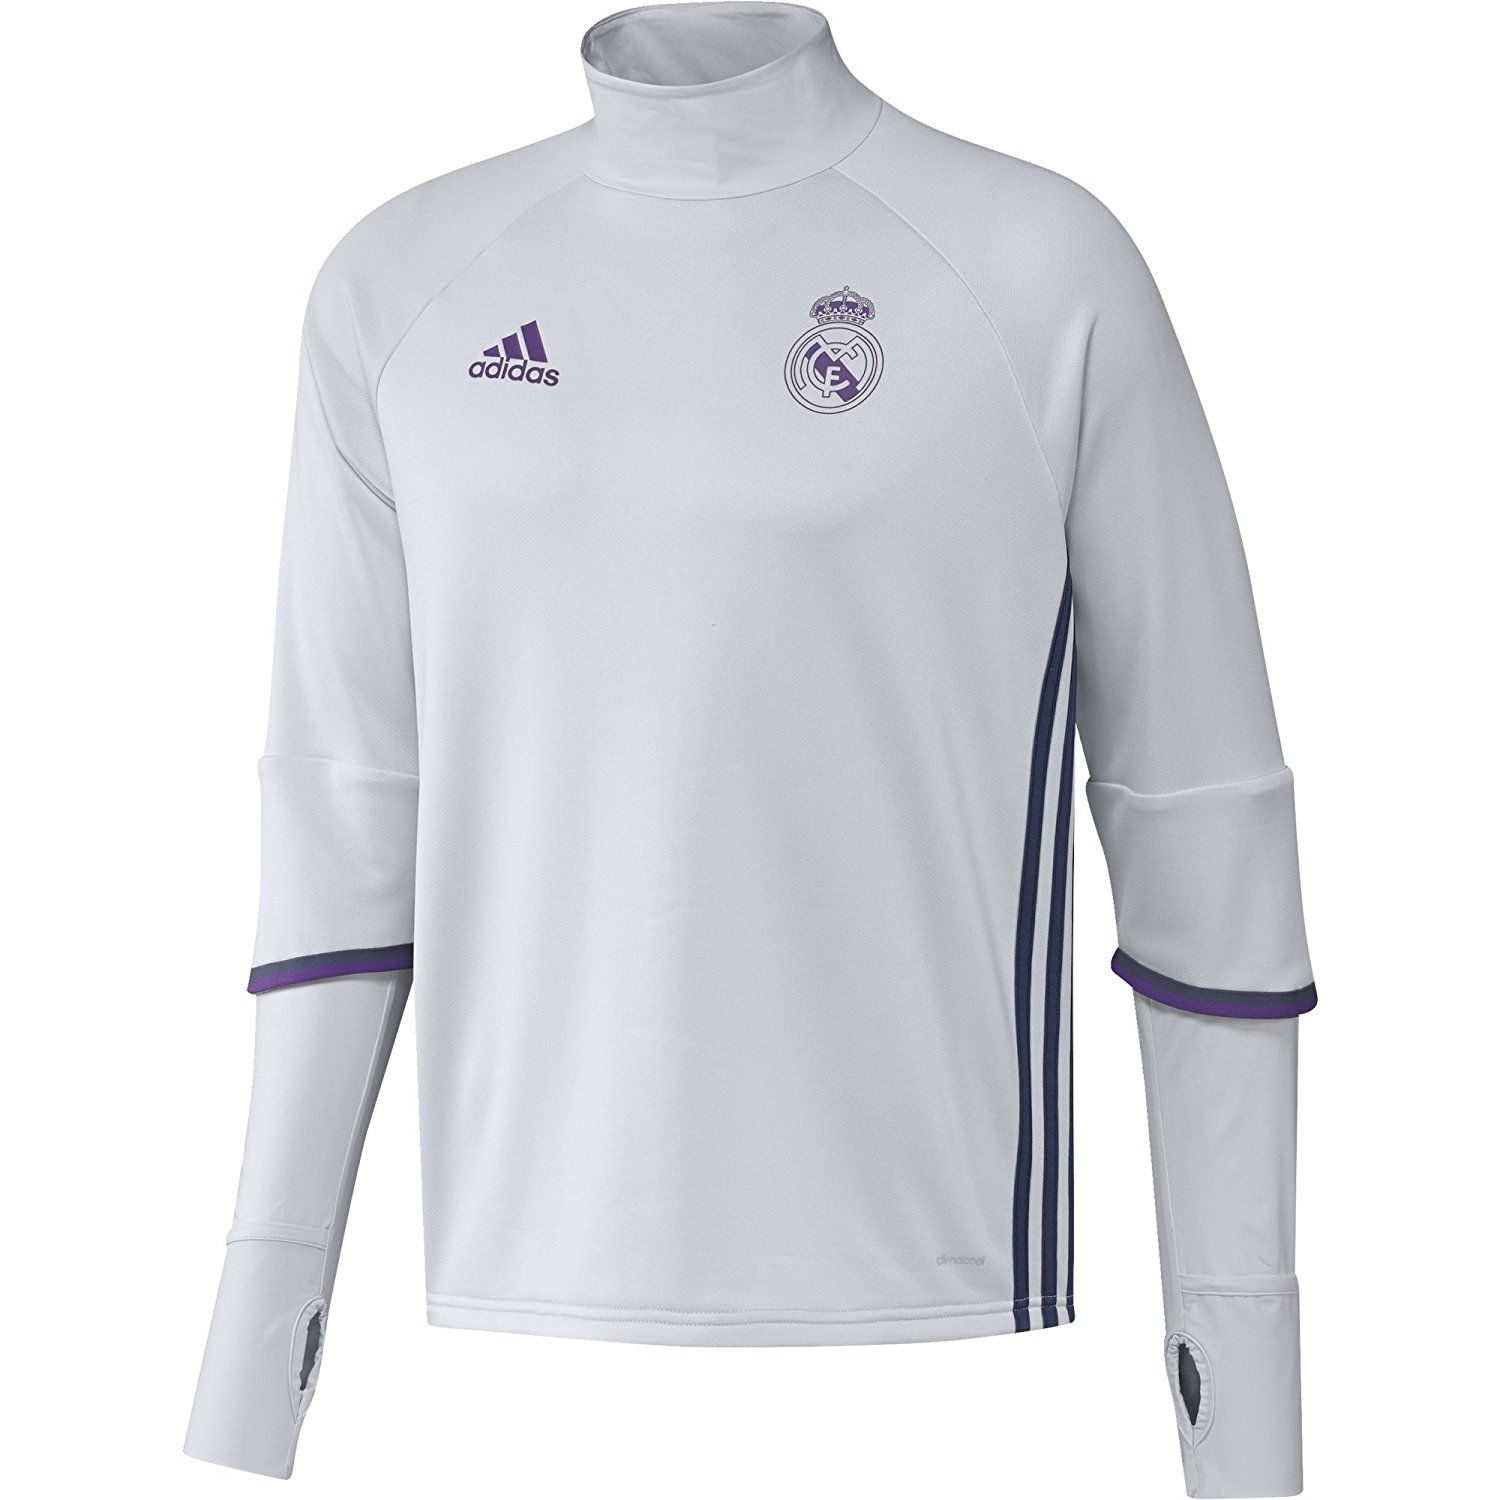 4df5c9317 adidas REAL TRG TOP -Sweatshirt - Ligne Real Madrid CF pour Homme. #adidas